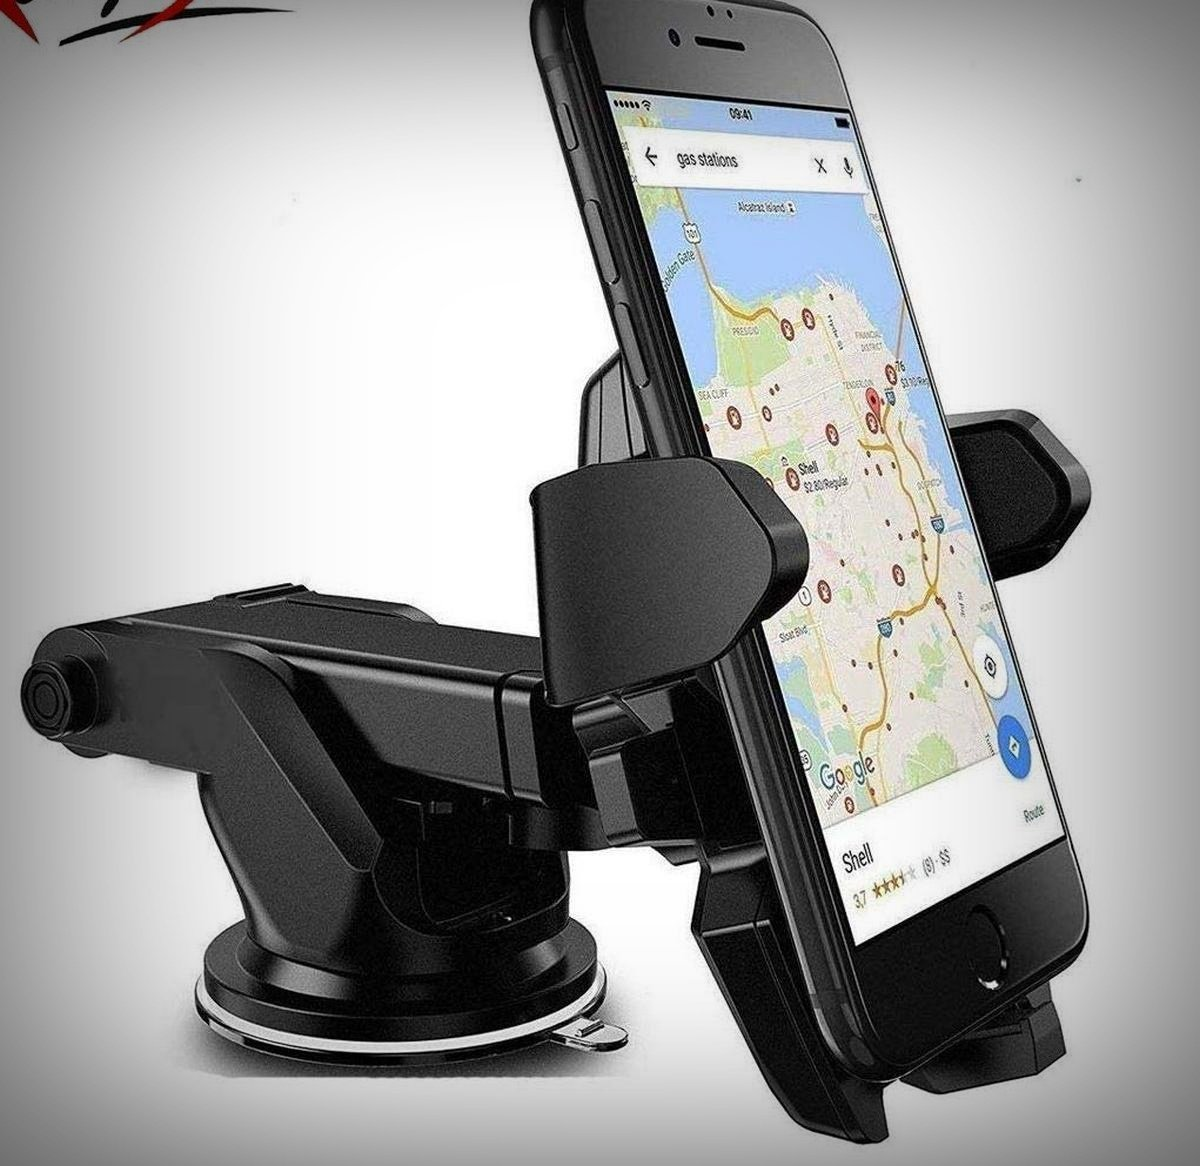 gabbar adjustable mobile holder for car